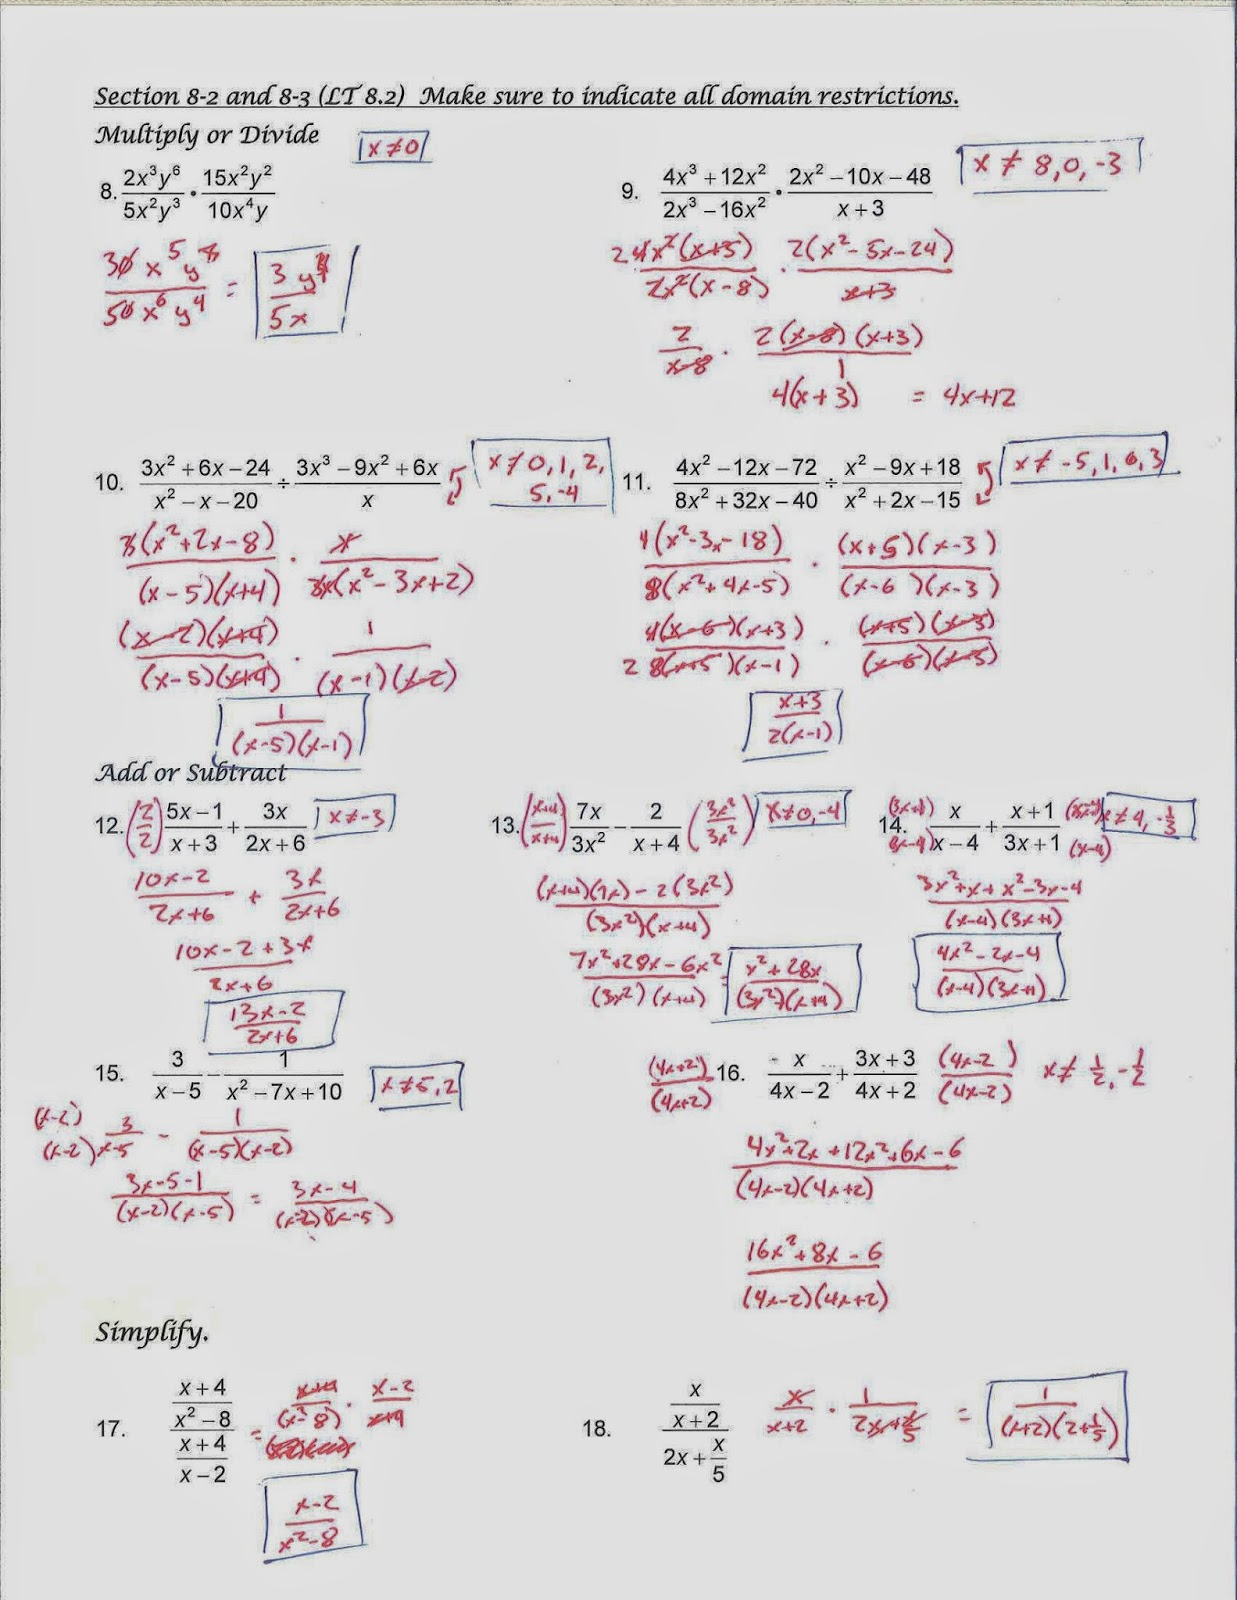 Mr Doran S Algebra 2 Unit 6 Exam Review Materials